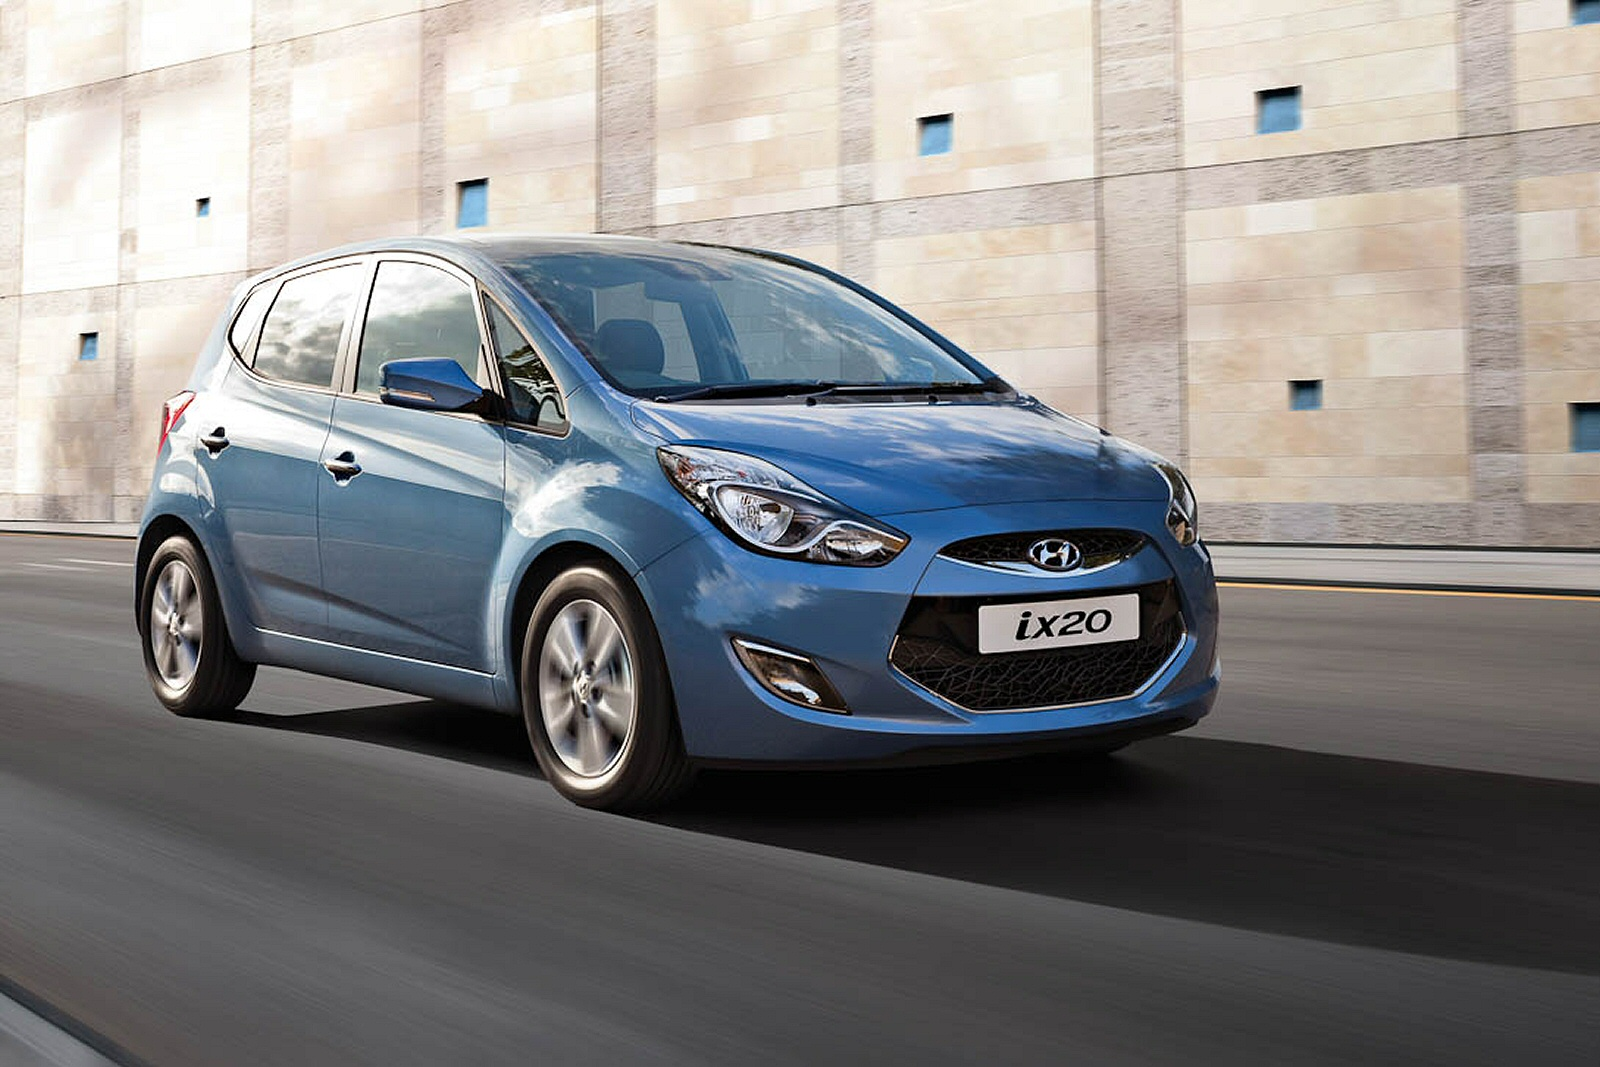 new hyundai ix20 1 6 se 5dr auto petrol hatchback. Black Bedroom Furniture Sets. Home Design Ideas